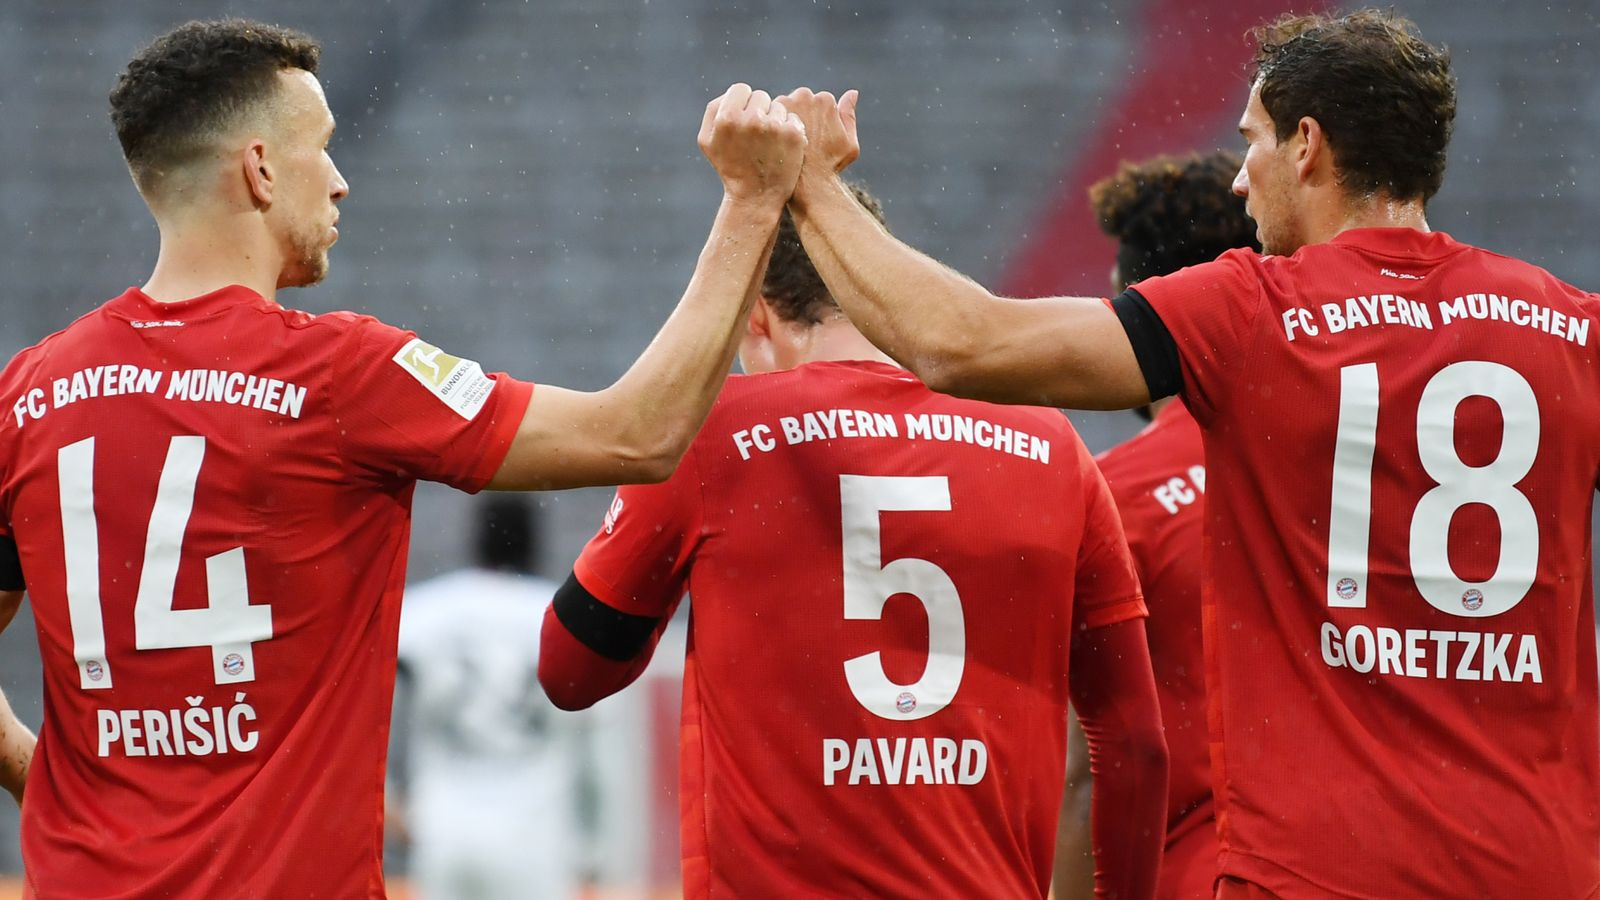 Bayern Munich and Borussia Dortmund show best and worst sides ahead of Tuesday's Klassiker - Bundesliga Hits and Misses